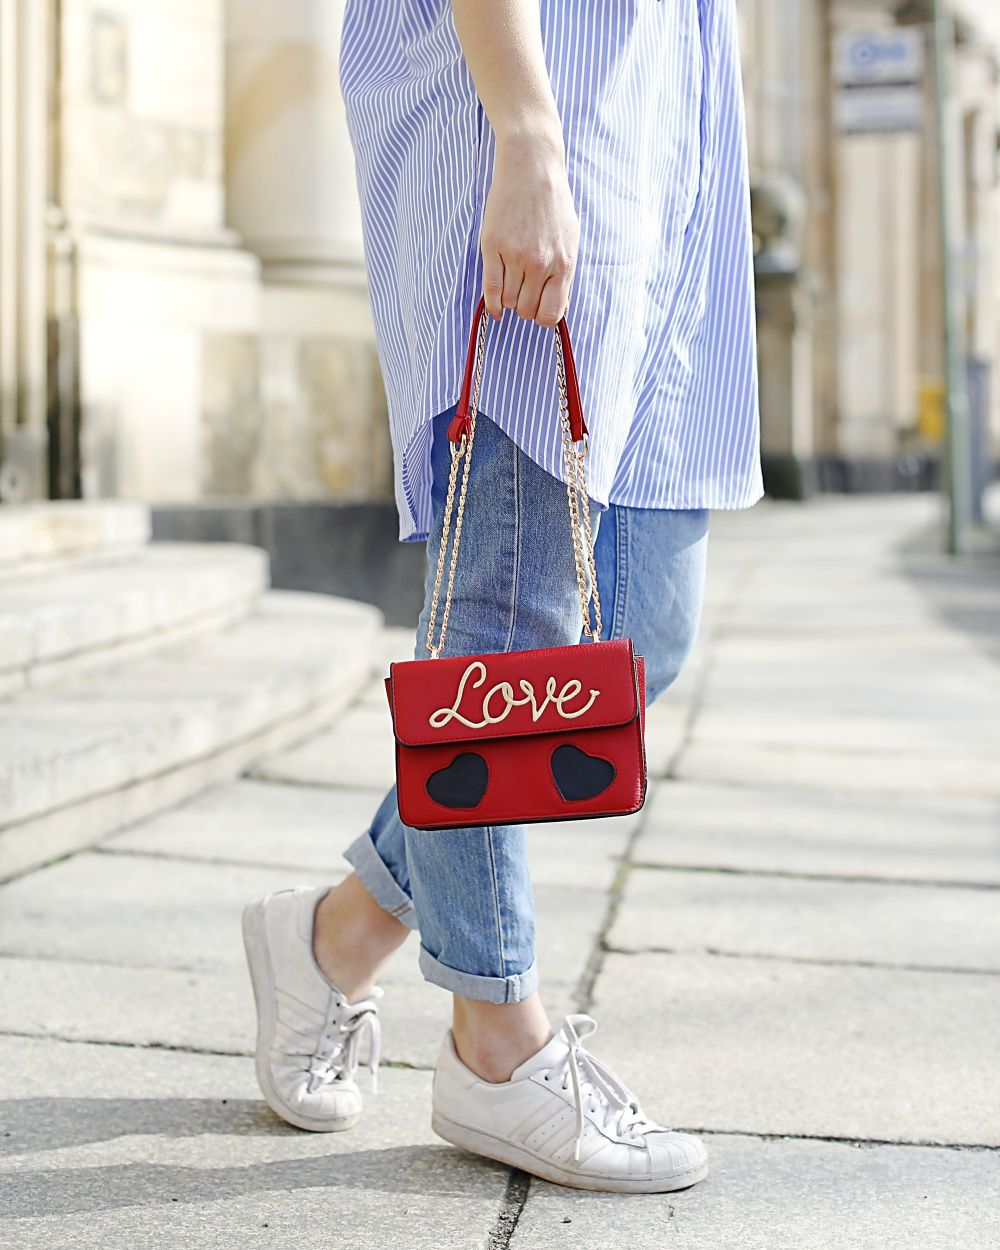 7d0a14049e embroidered shirtdress shirt striped rose roses embroidery trend romwe dress  love bag red colorful sassy classy